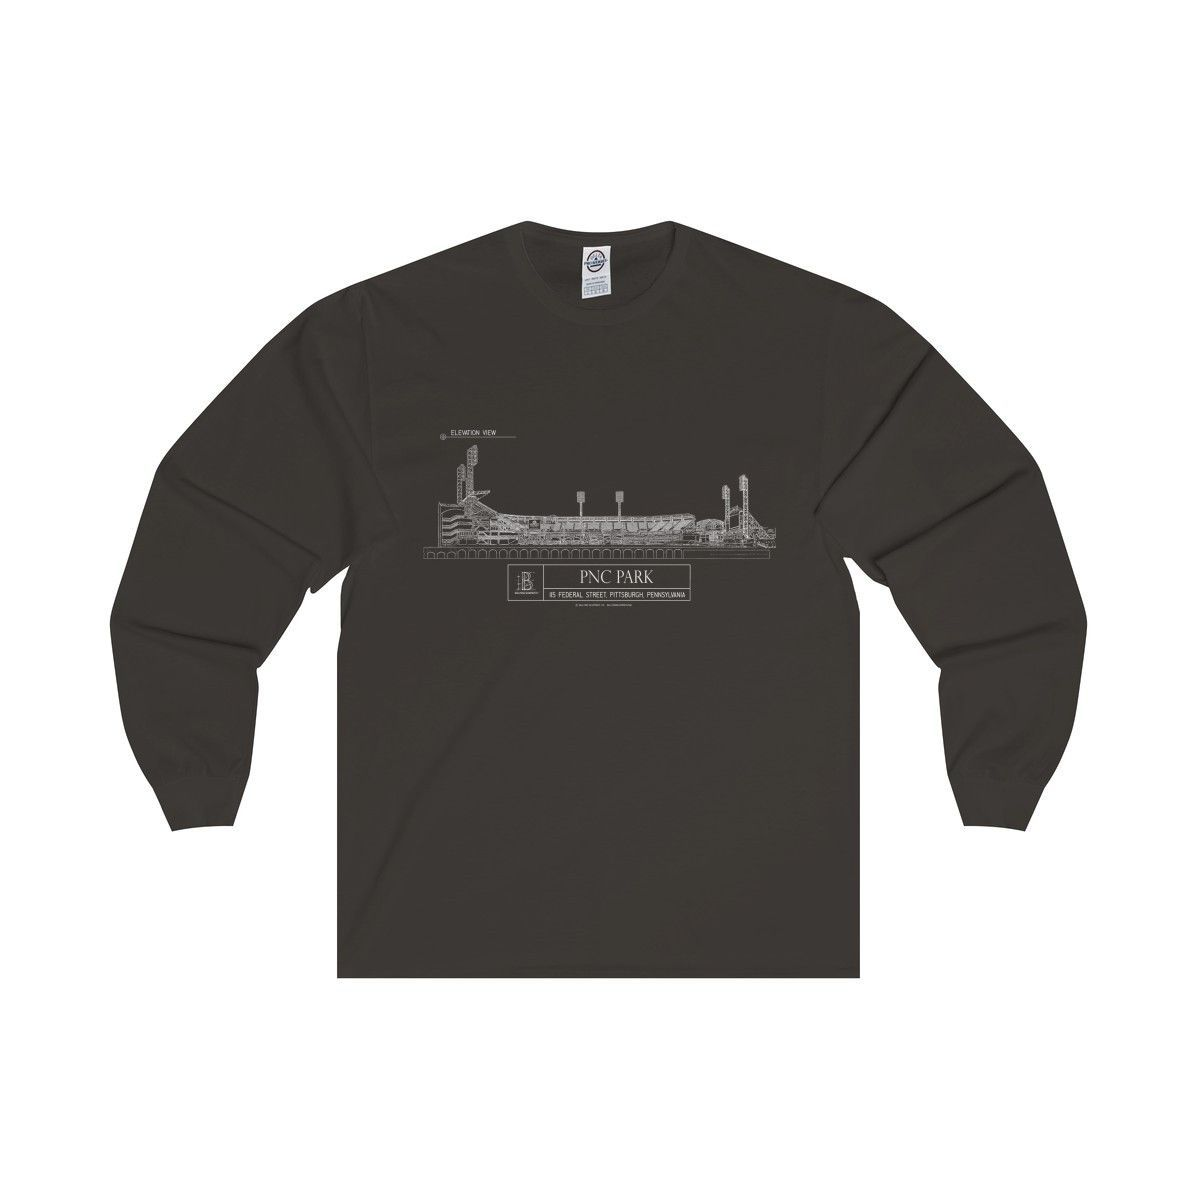 PNC Park Long Sleeve Tee